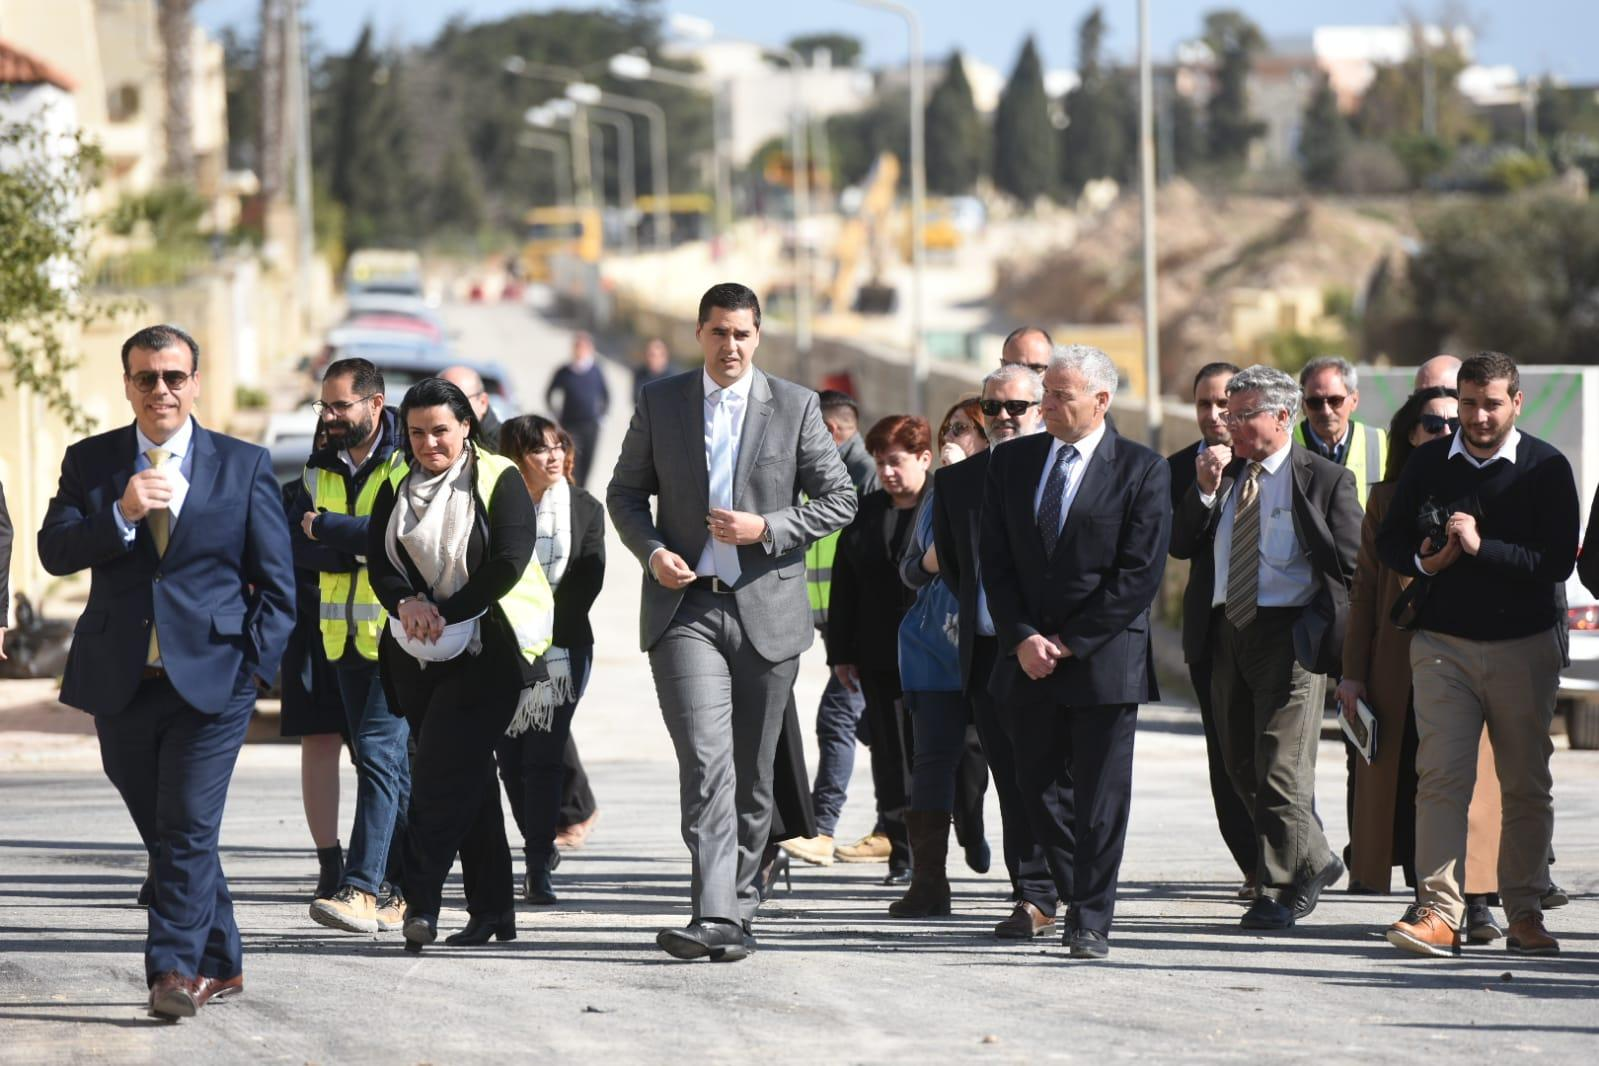 Infrastructure Malta boss Frederick Azzopardi (far left) and Infrastructure Minister Ian Borg (centre) lead a group during a press conference to announce the court decision. Photo: Chris Sant Fournier